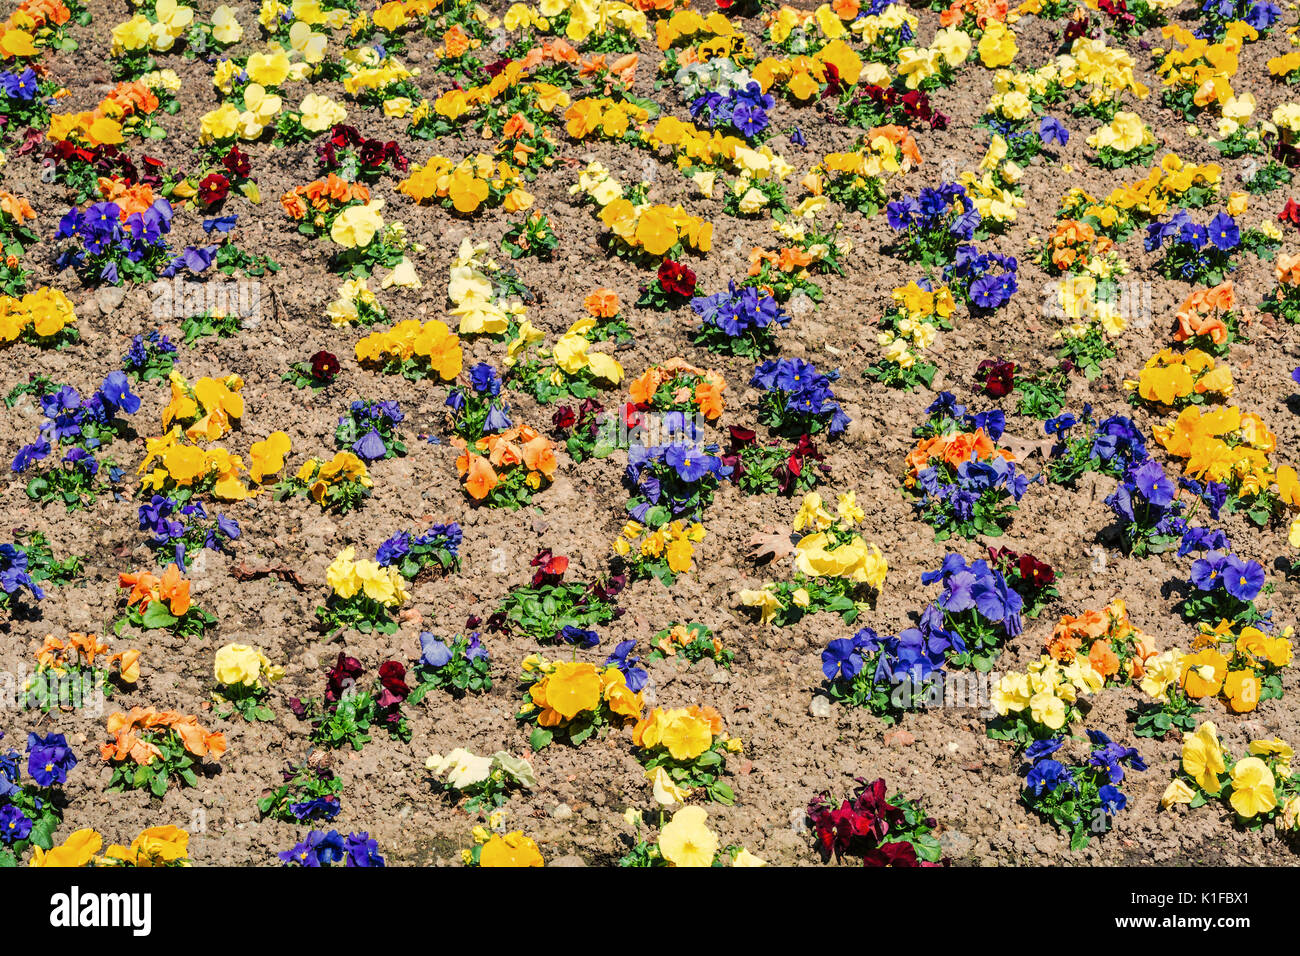 Mixed Pansies in the flowerbed Stock Photo